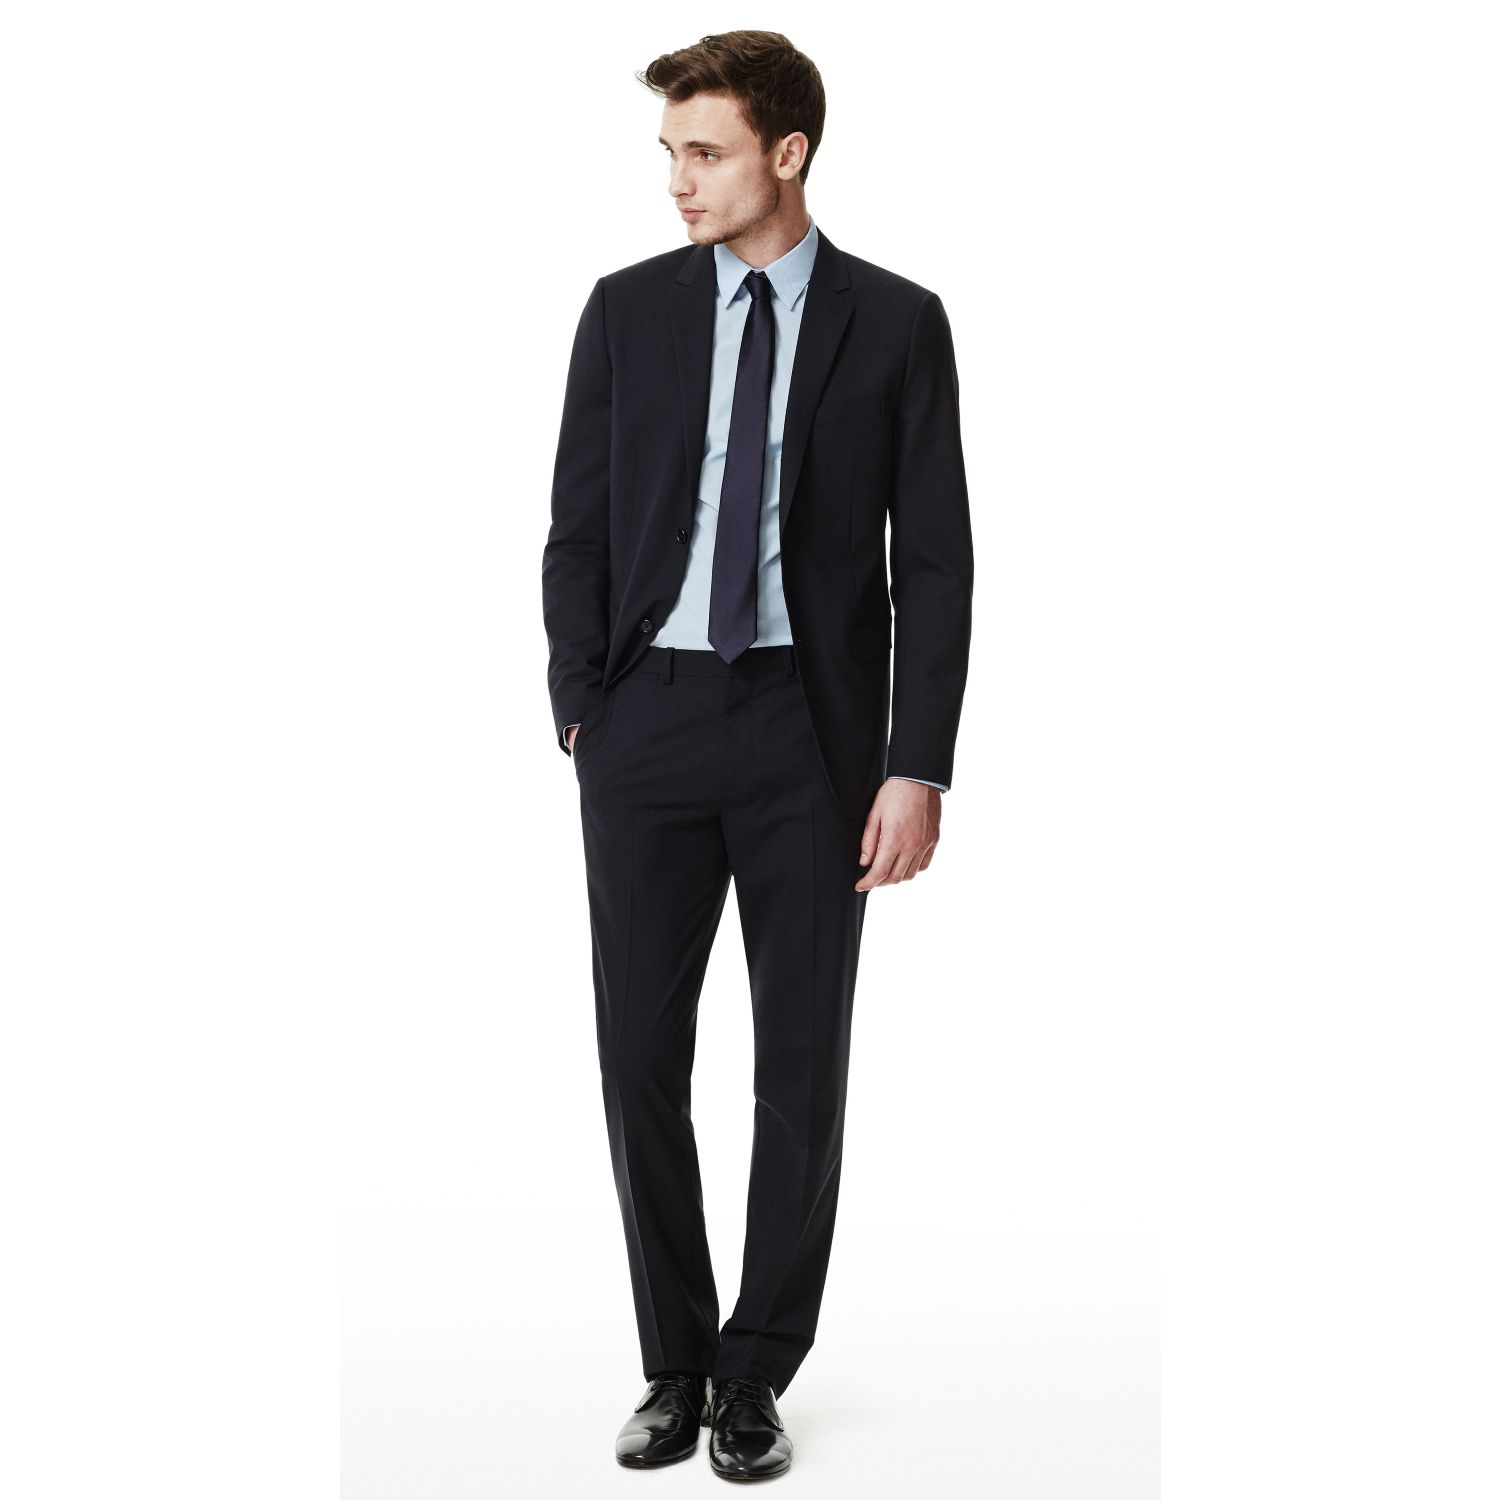 010becb4b1f3 Lyst - Theory Wellar Hc Suit Jacket In New Tailor Wool Bistretch in ...